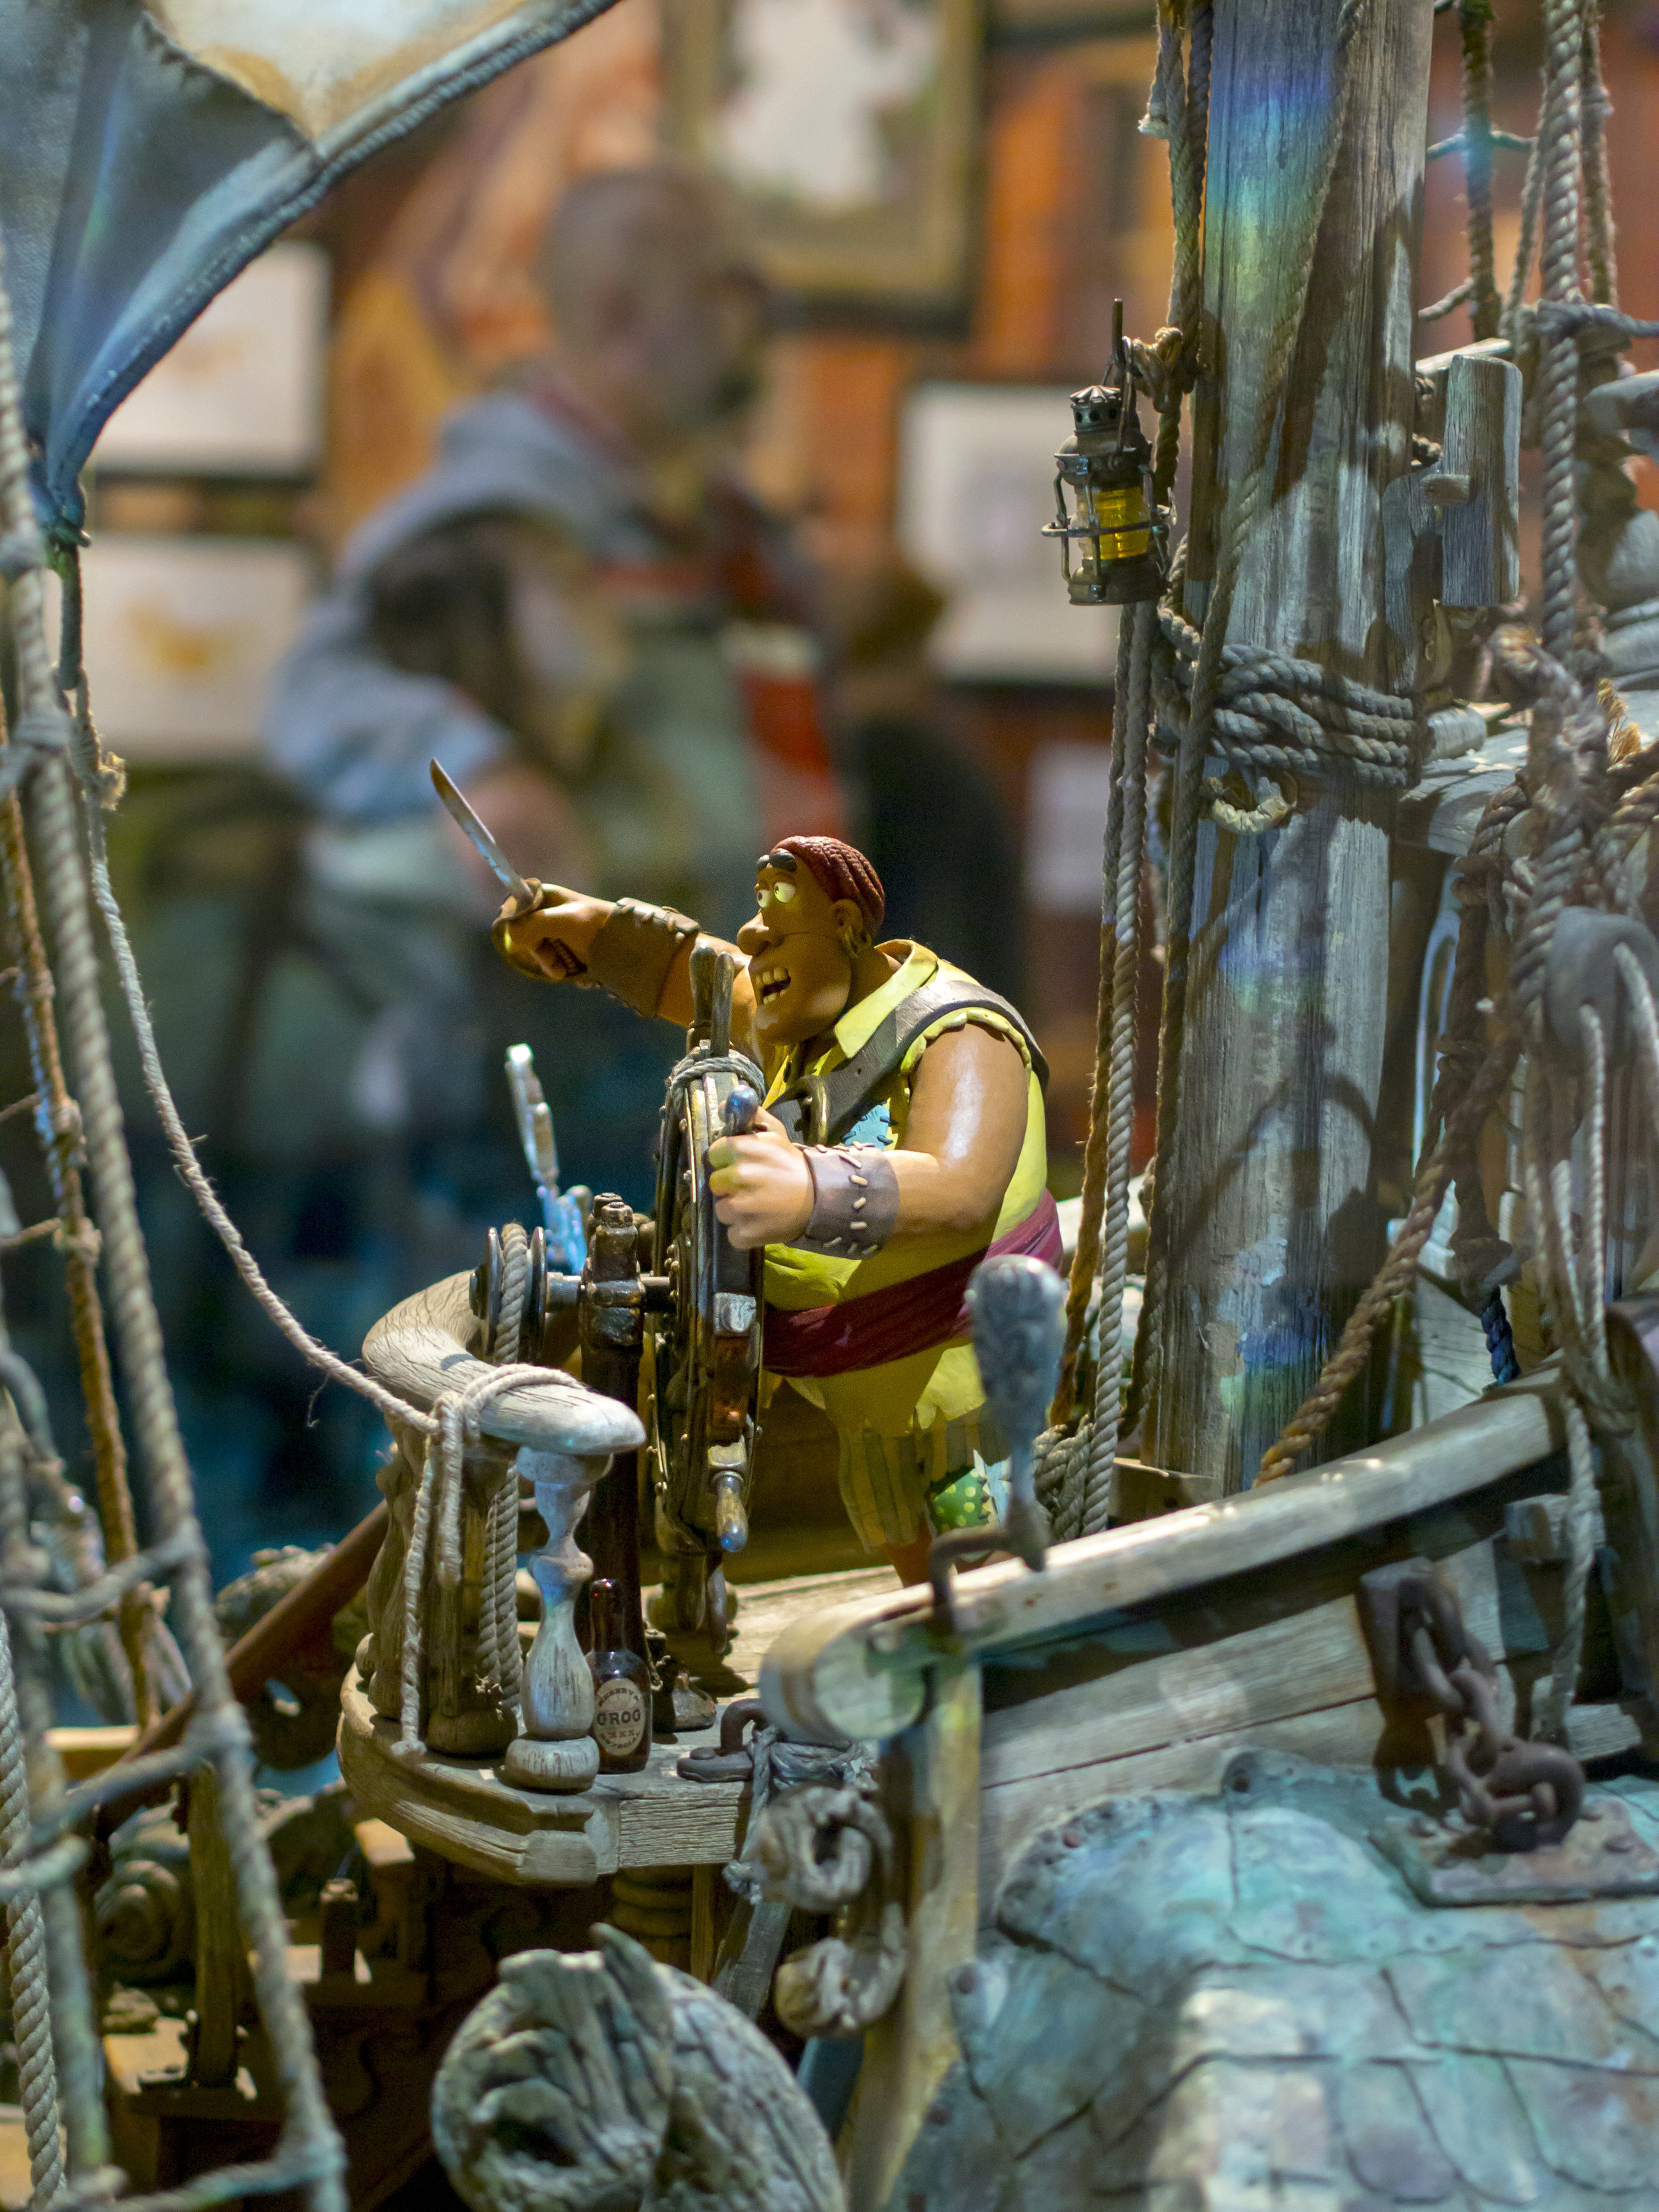 The figure behind the wheel is about 20cm tall and the ship is complete from stem to stern.